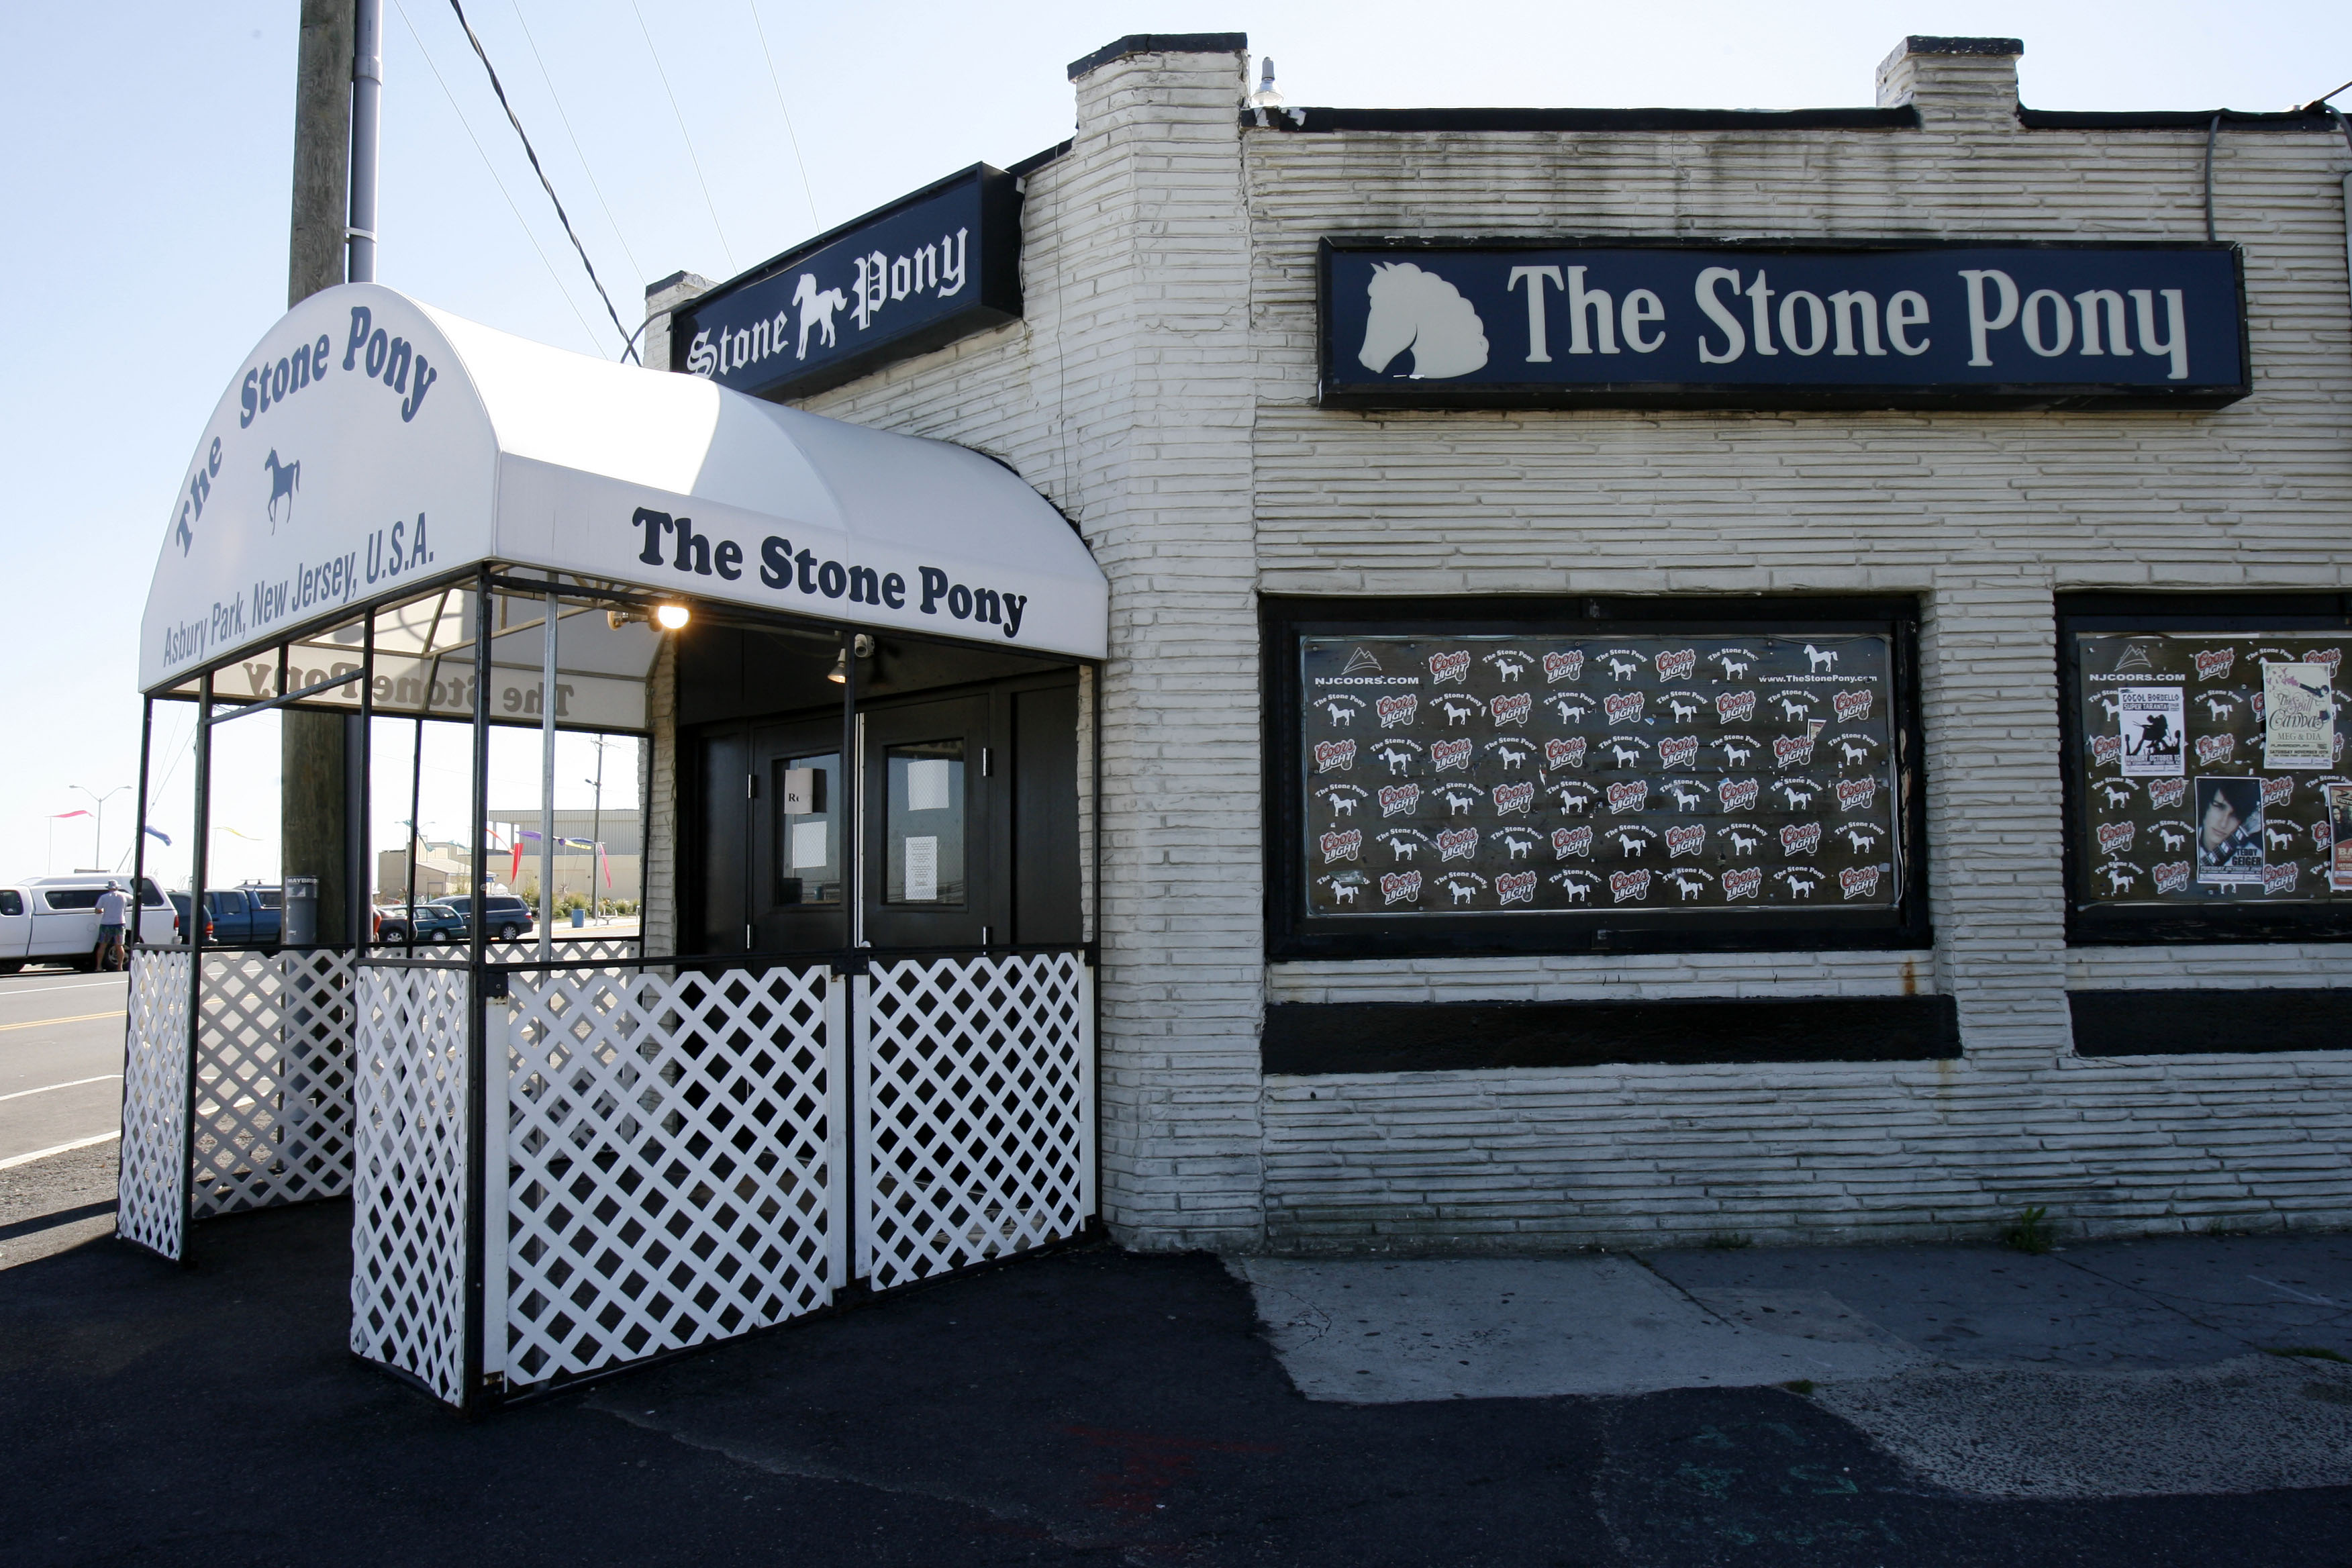 The Stone Pony Entrance, Present Day